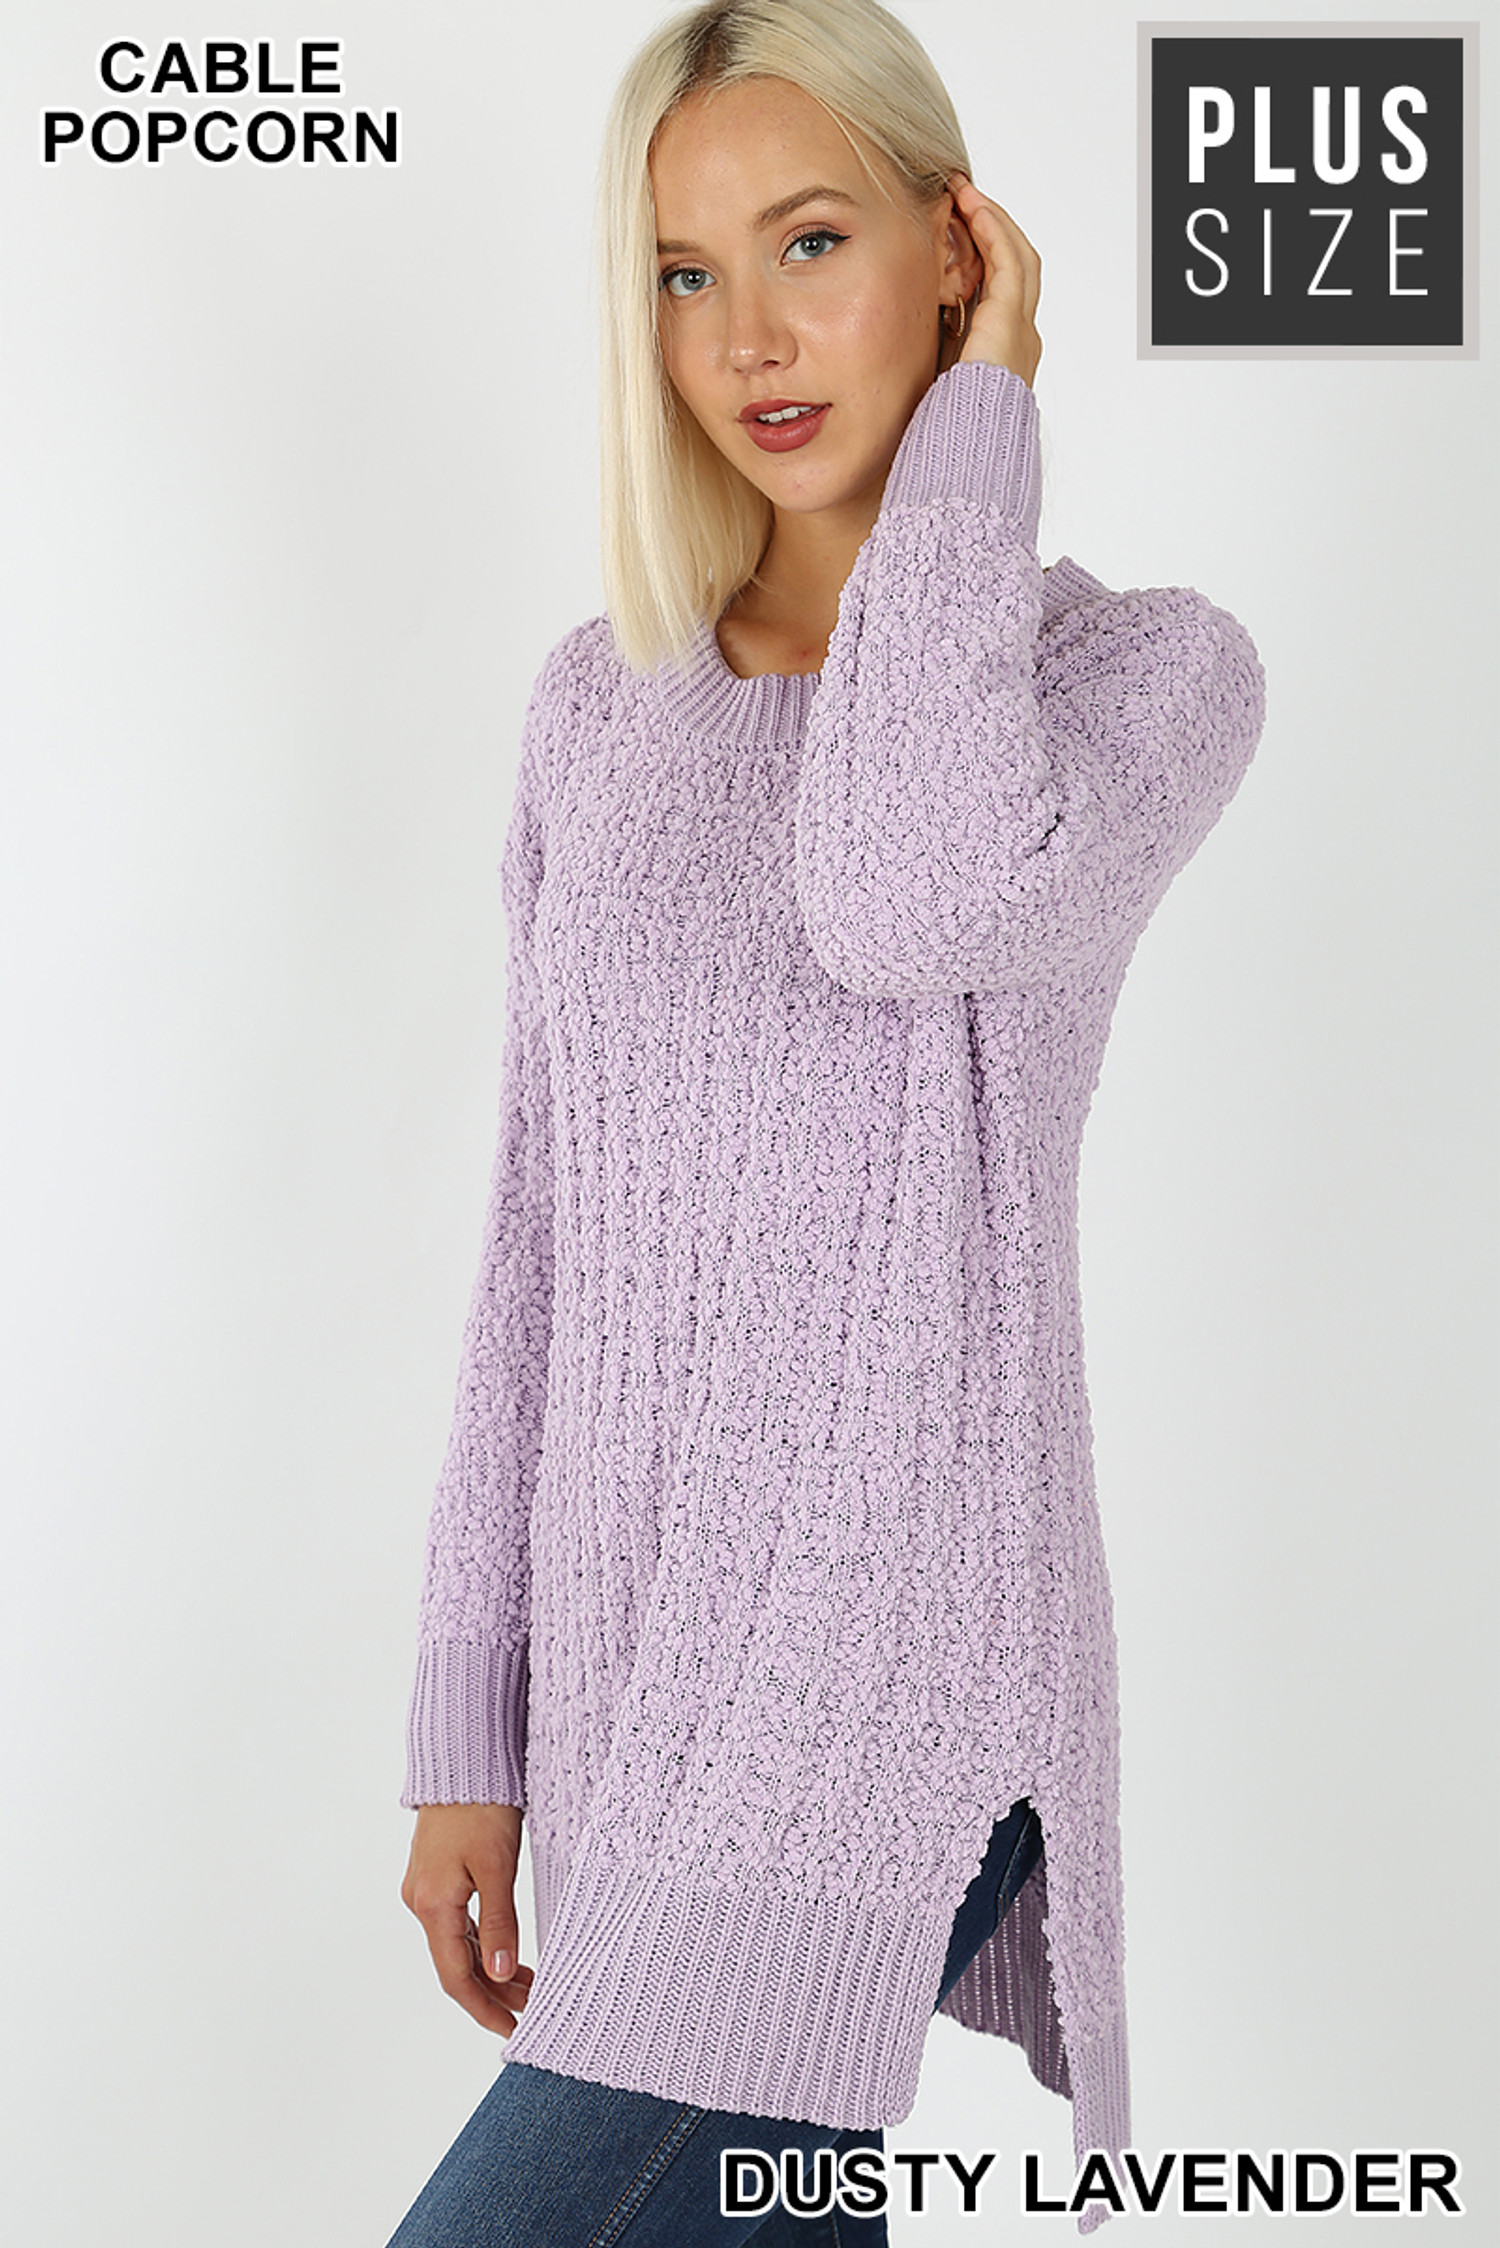 45 degree image of Dusty Lavender Cable Knit Popcorn Round Neck Hi-Low Plus Size Sweater